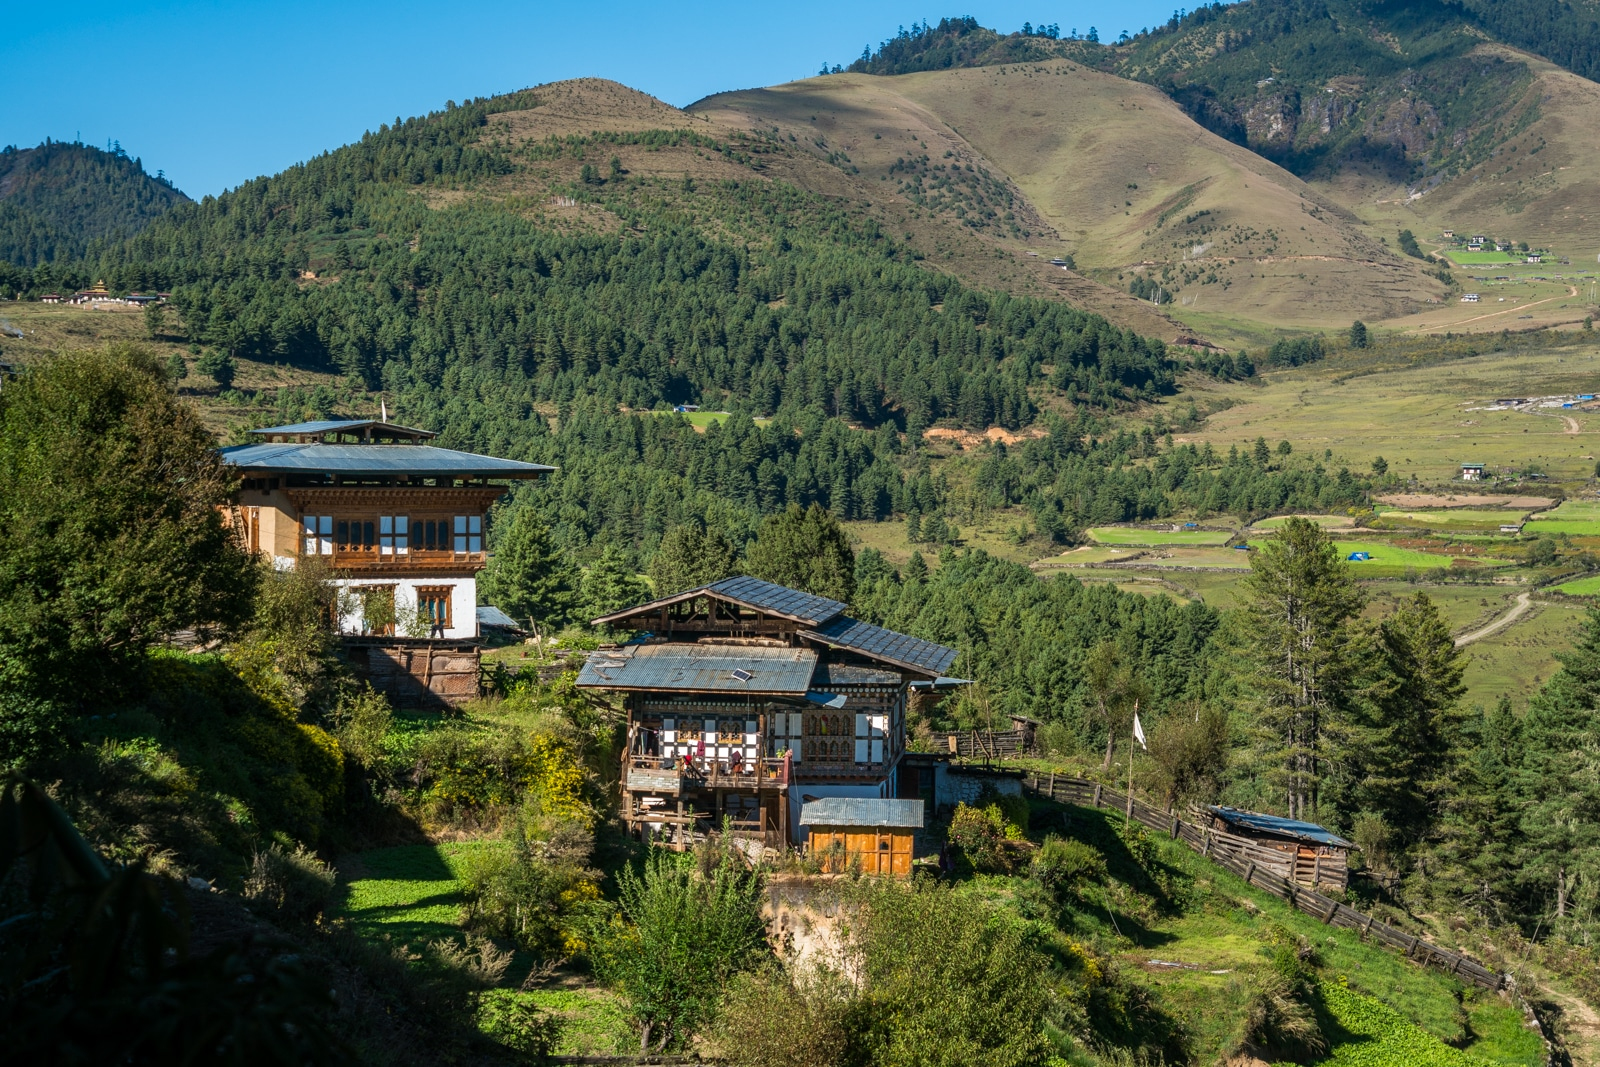 Is Bhutan worth $250 per day? - Traditional Bhutanese houses in Phobjikha Valley, close to Gangtey monastery - Lost With Purpose travel blog